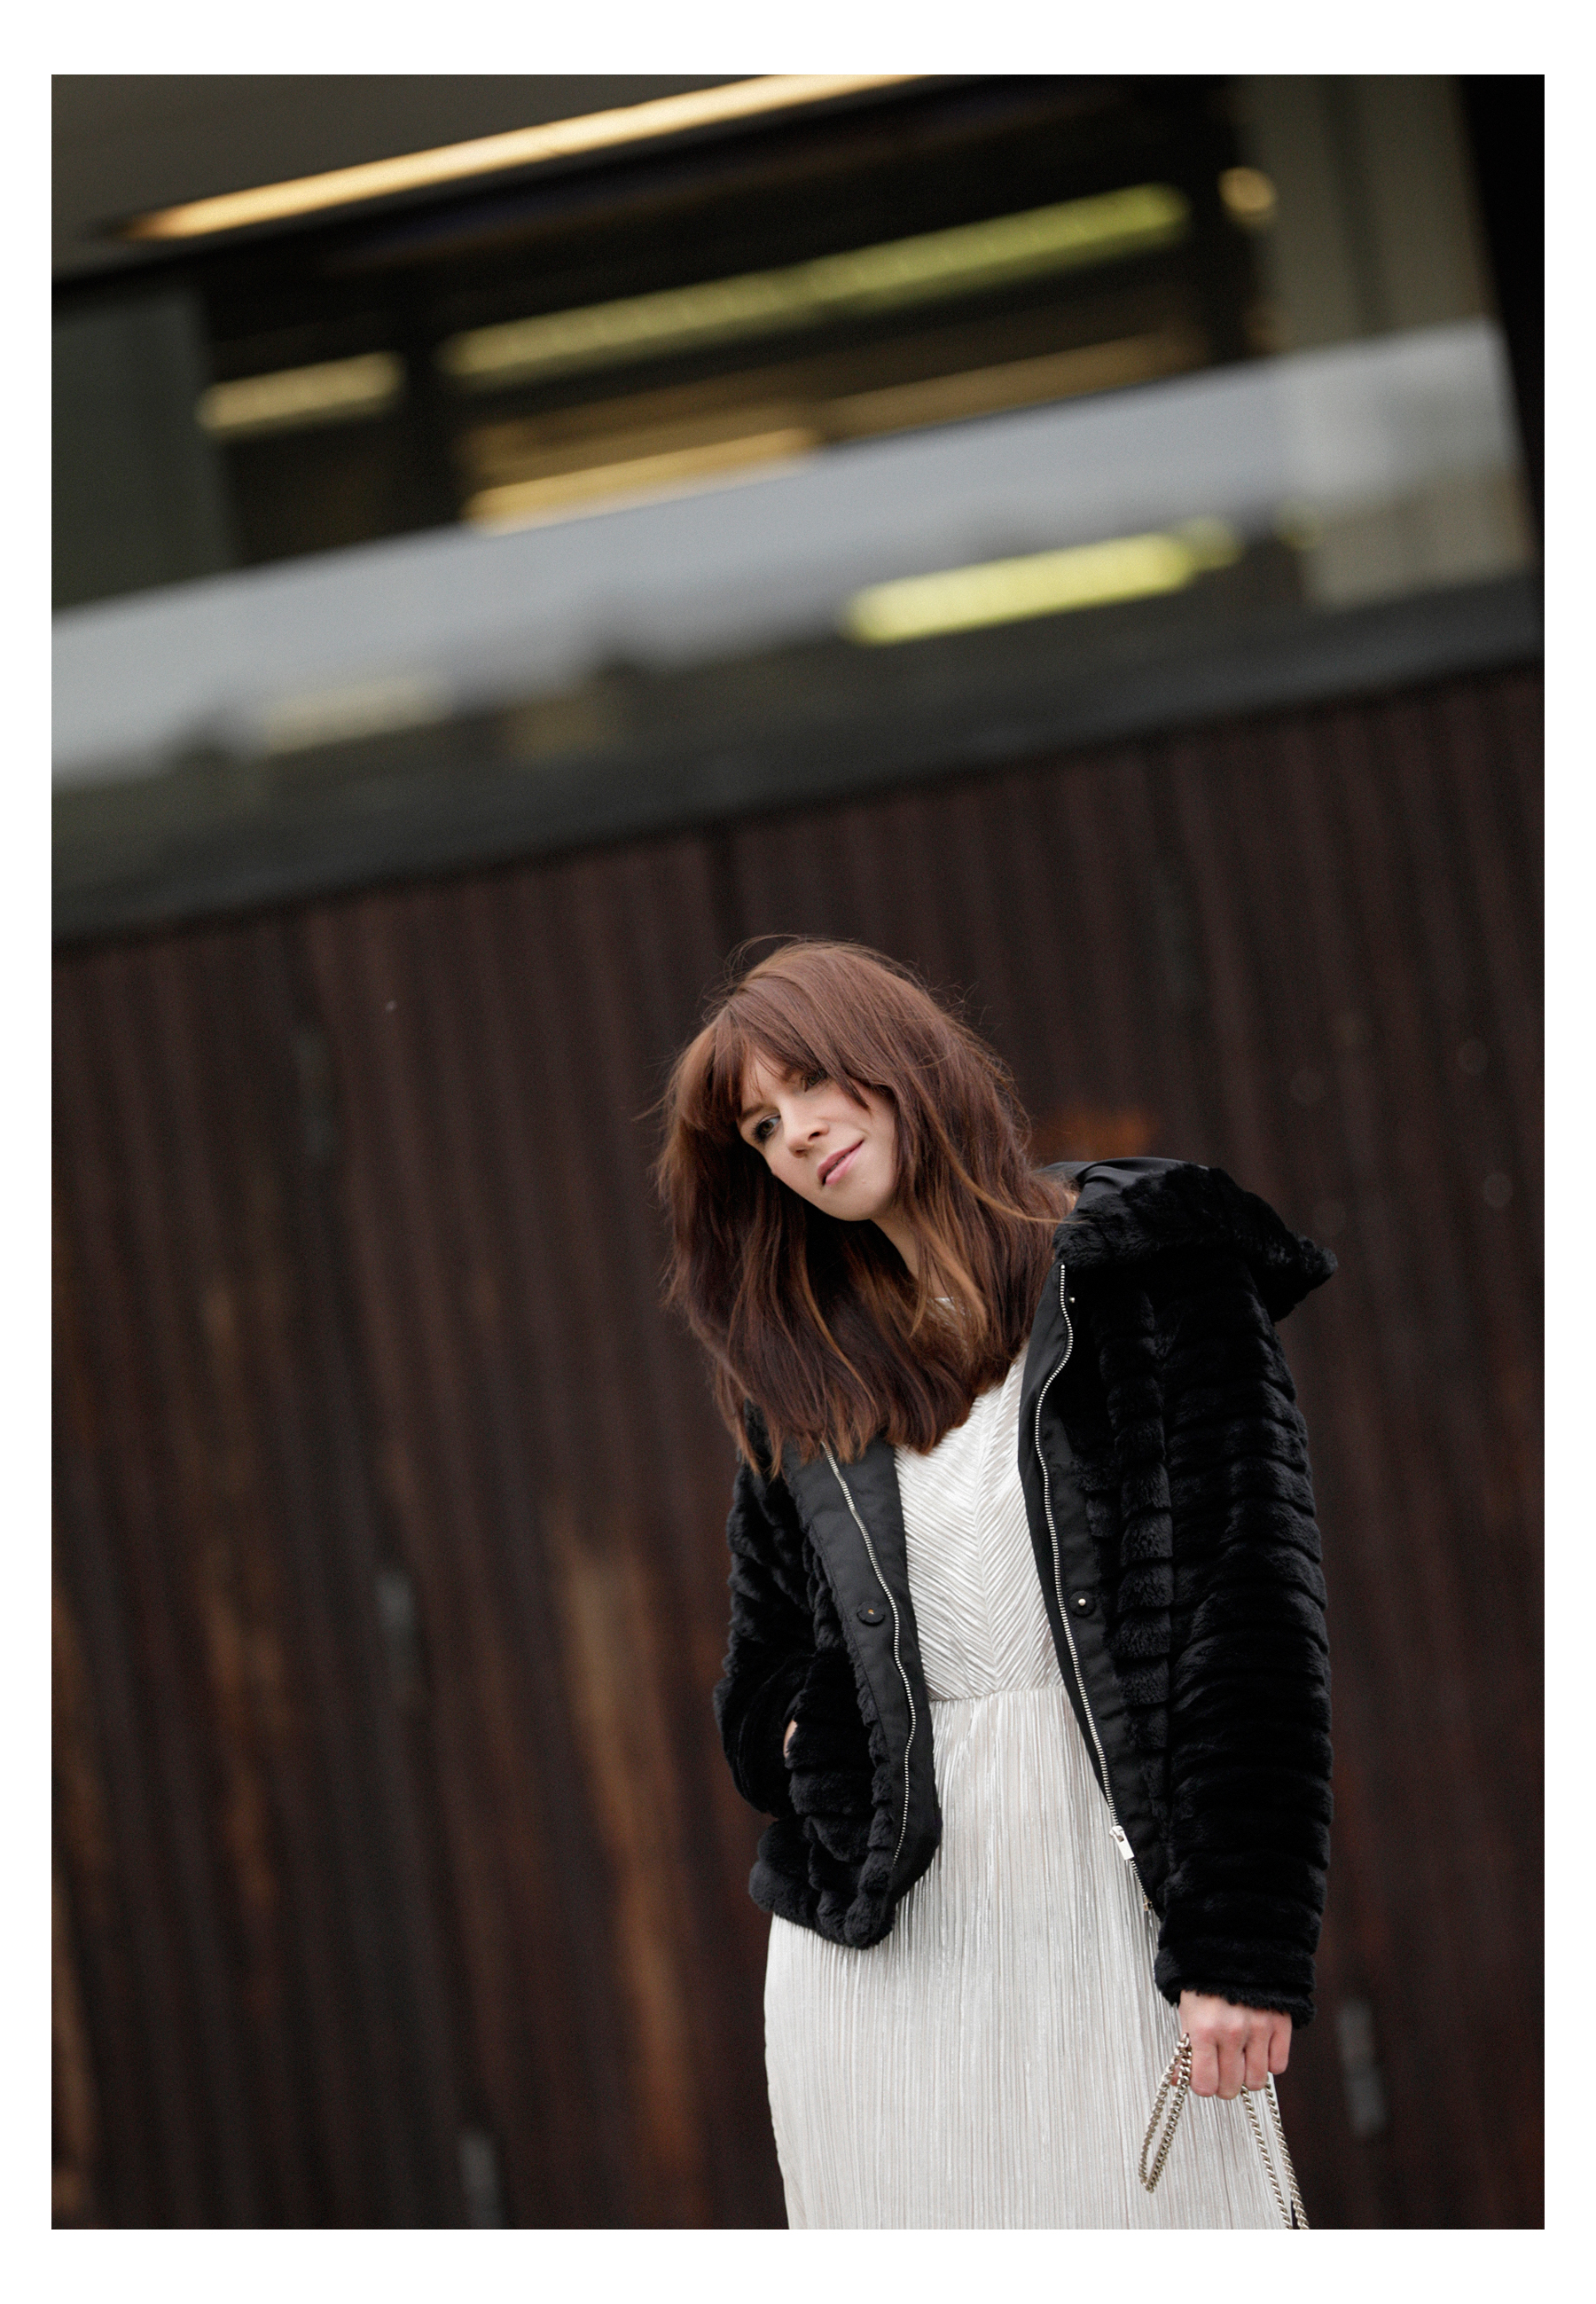 winter christmas new year's eve look outfit styling fake fur glitter glam minimal black and white gucci ootd fashionblogger dusseldorf germany catsanddogsblog ricarda schernus max bechmann fotografie film 5